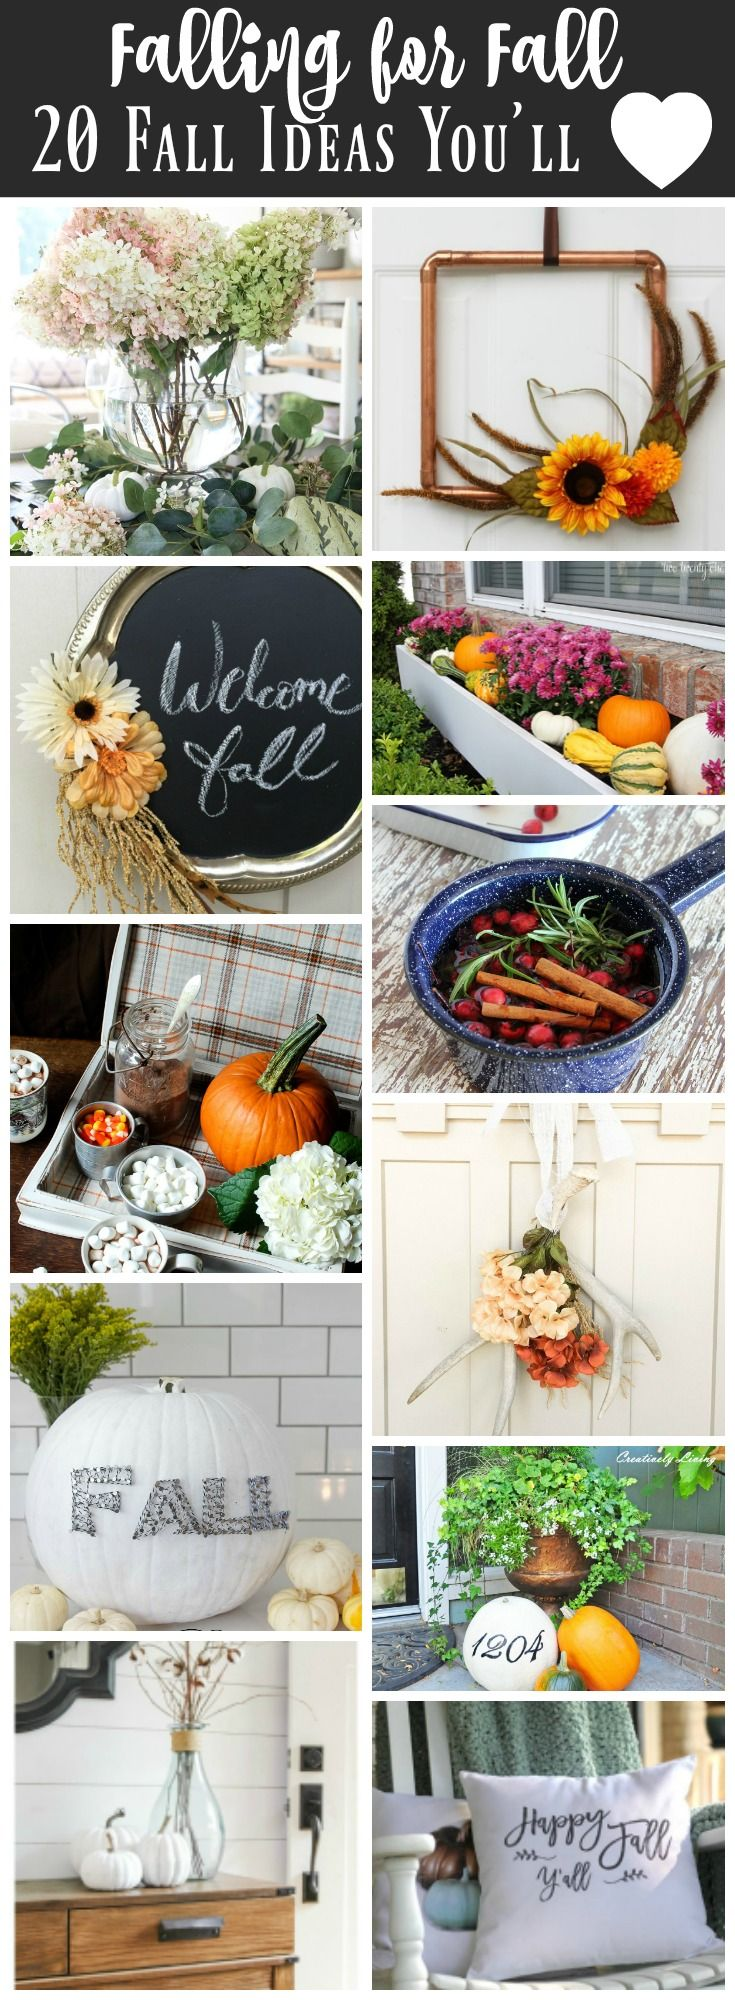 falling-for-fall-20-fantastic-fall-ideas-that-youll-love